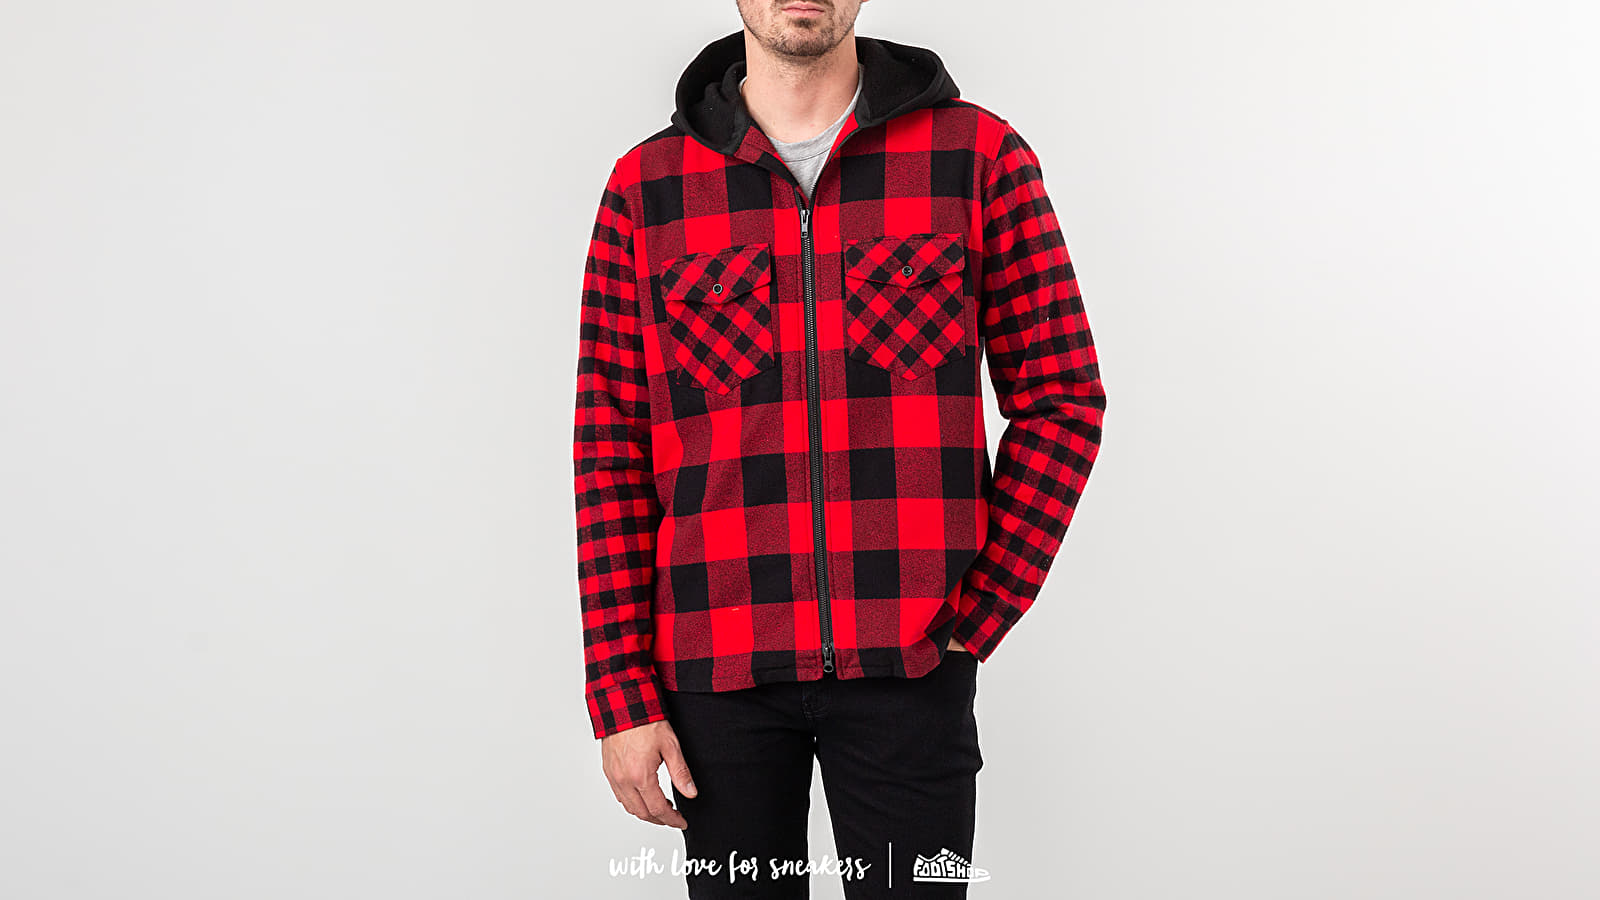 Raised by Wolves Chain Stitch Hooded Flanel Shirt